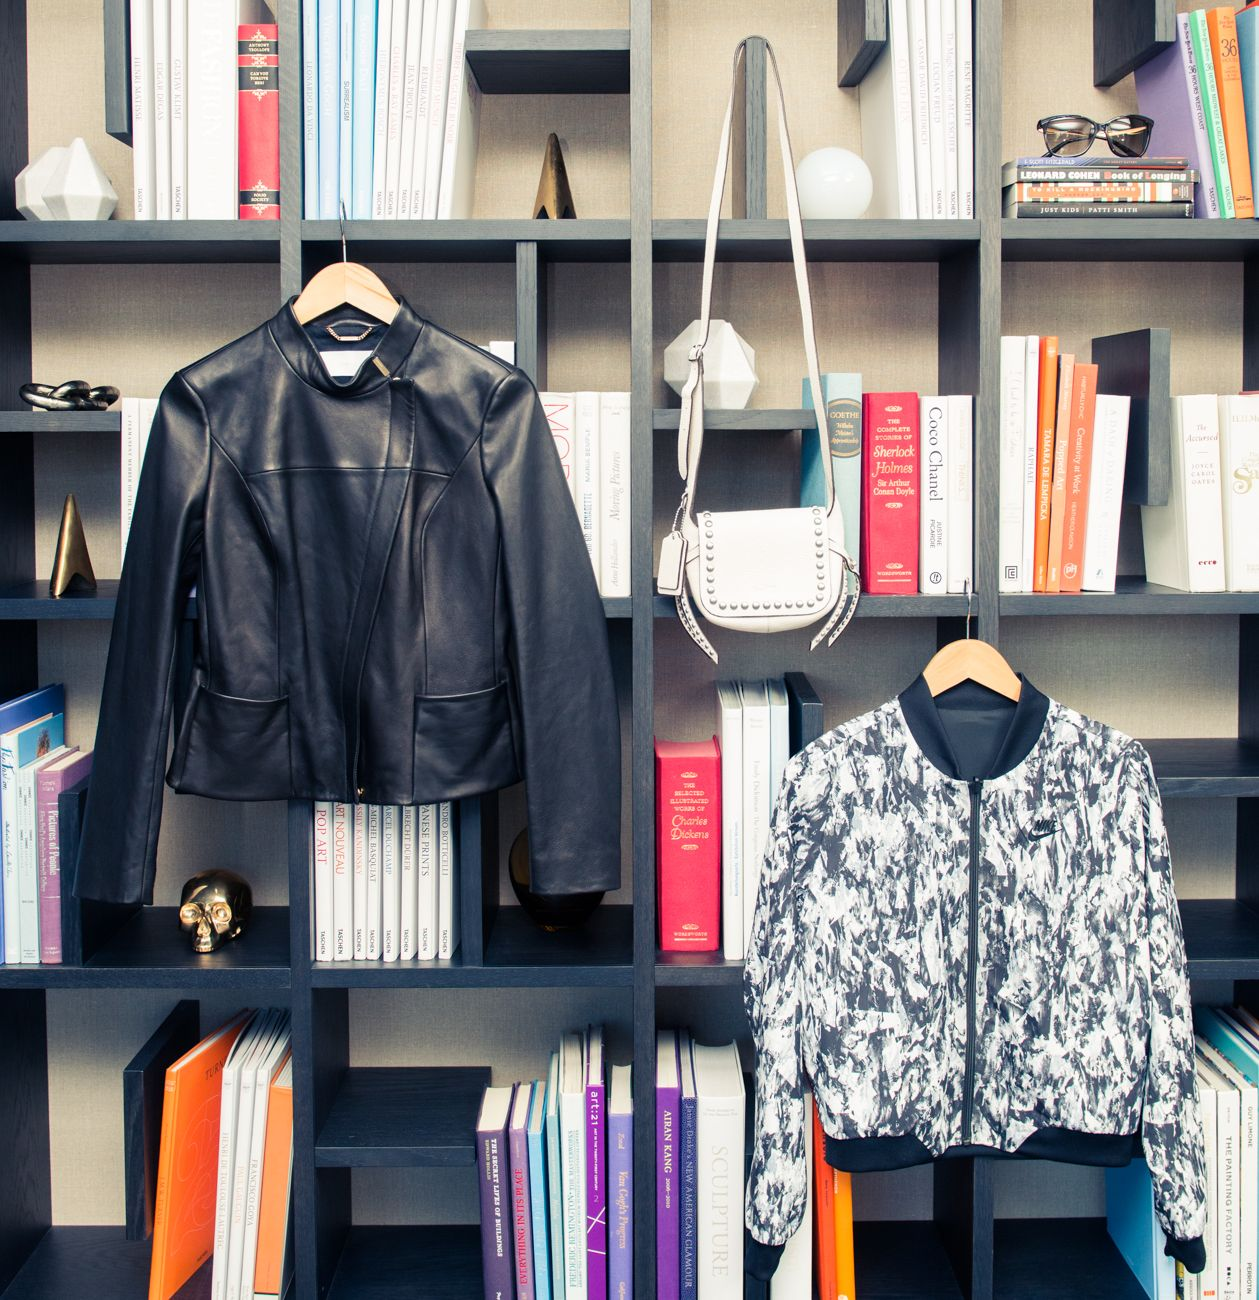 Two jackets hanging on a book shelf